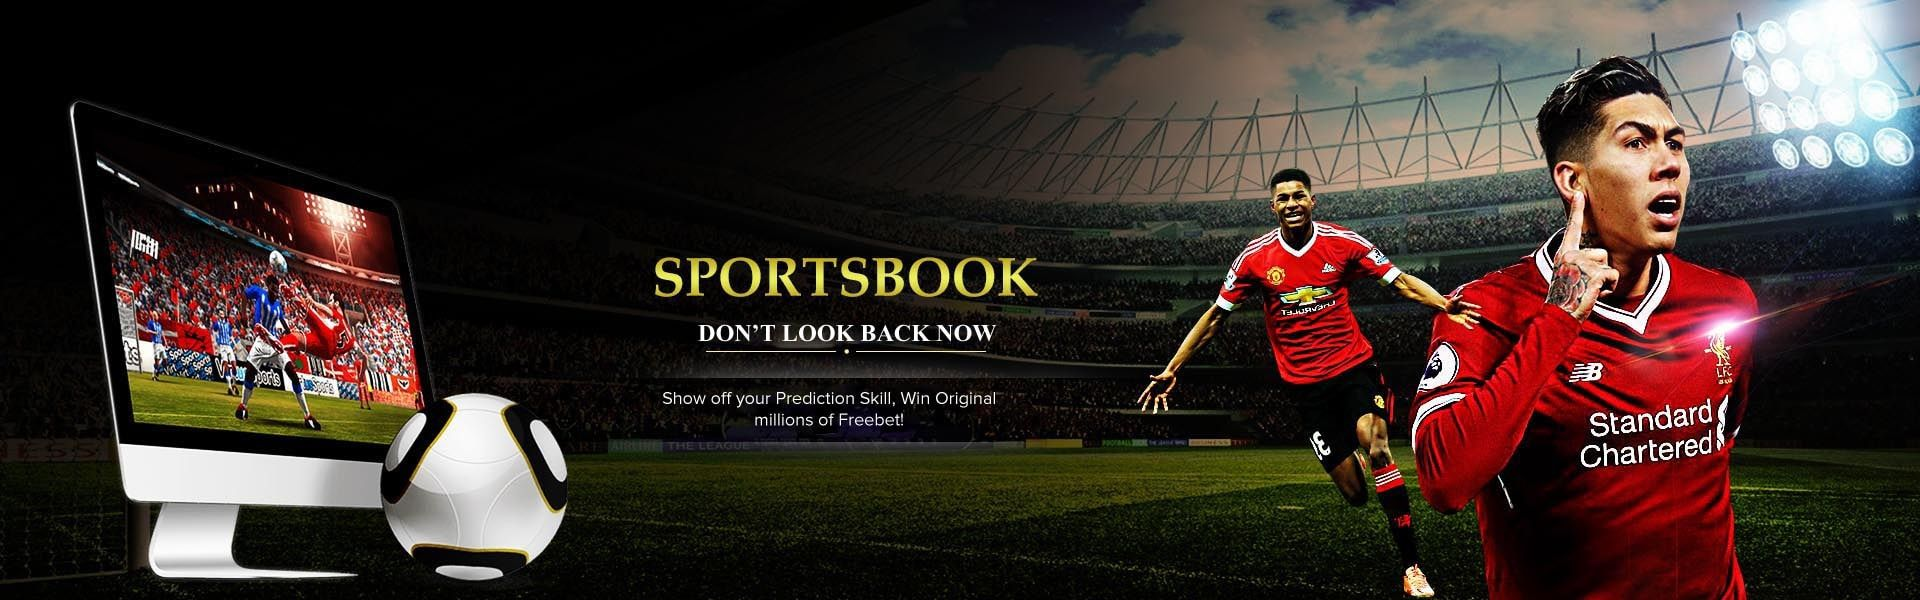 Online Betting in Malaysia   Sportsbook, Betting, Online